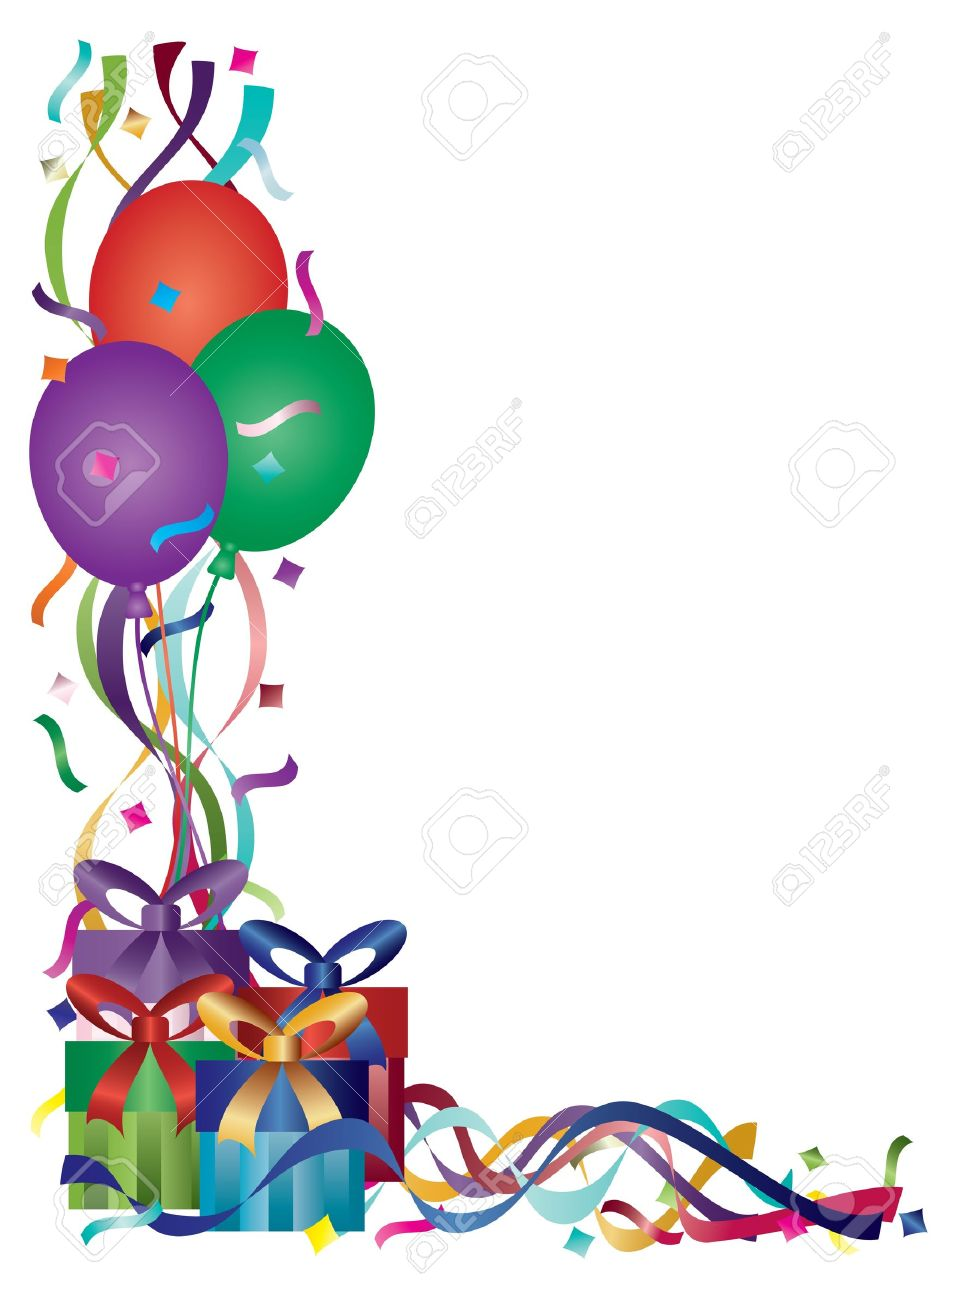 free clipart birthday presents ; 16008403-birthday-presents-with-colorful-ribbons-and-confetti-border-background-illustration